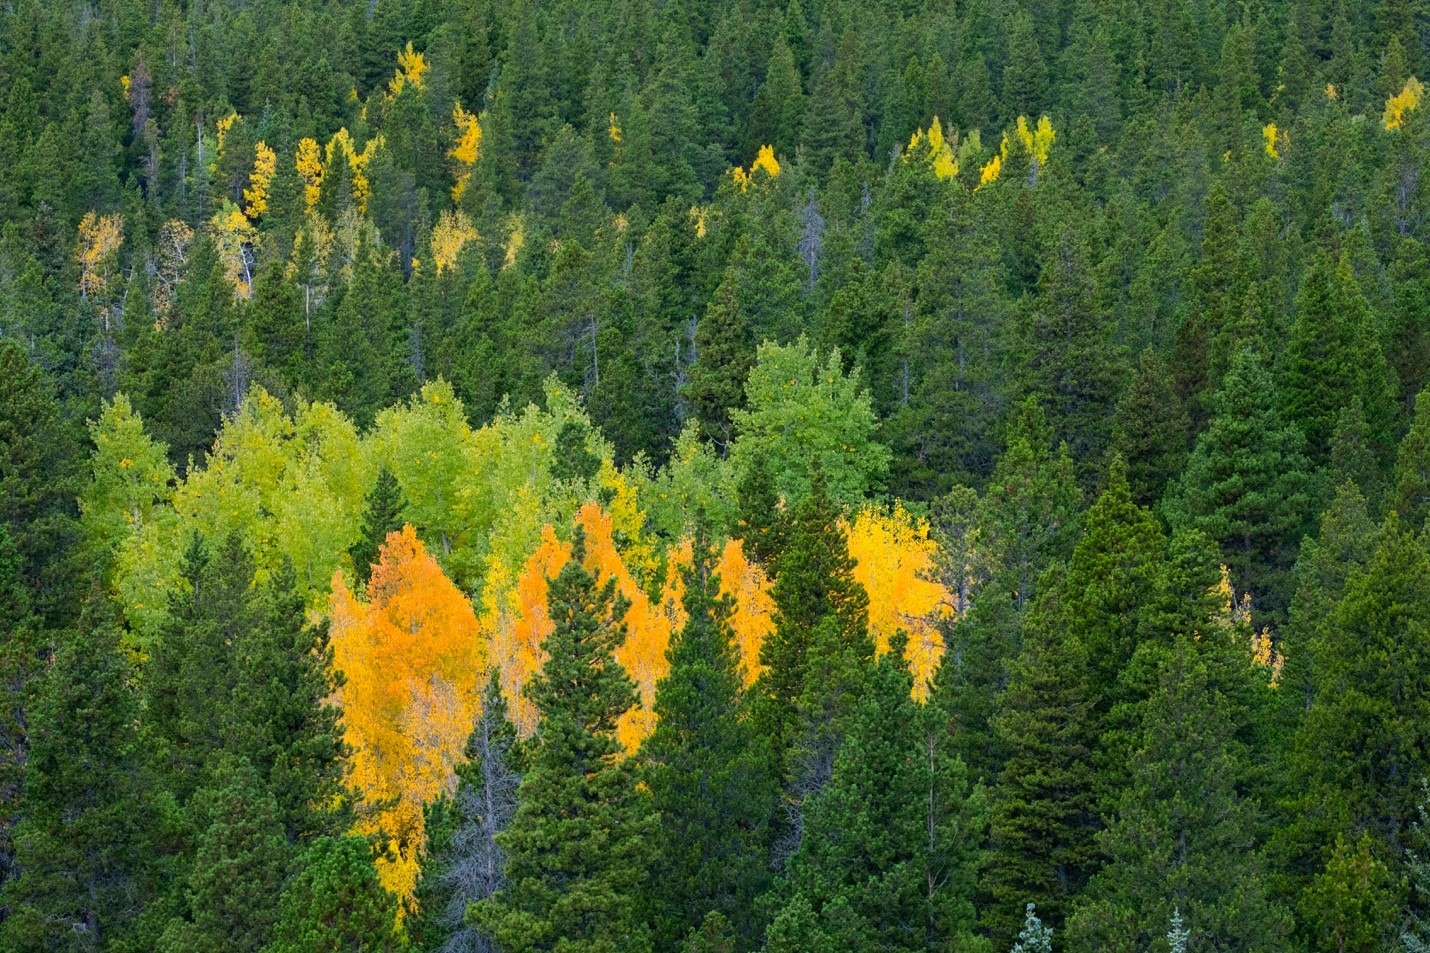 aspen trees change color in a gradient